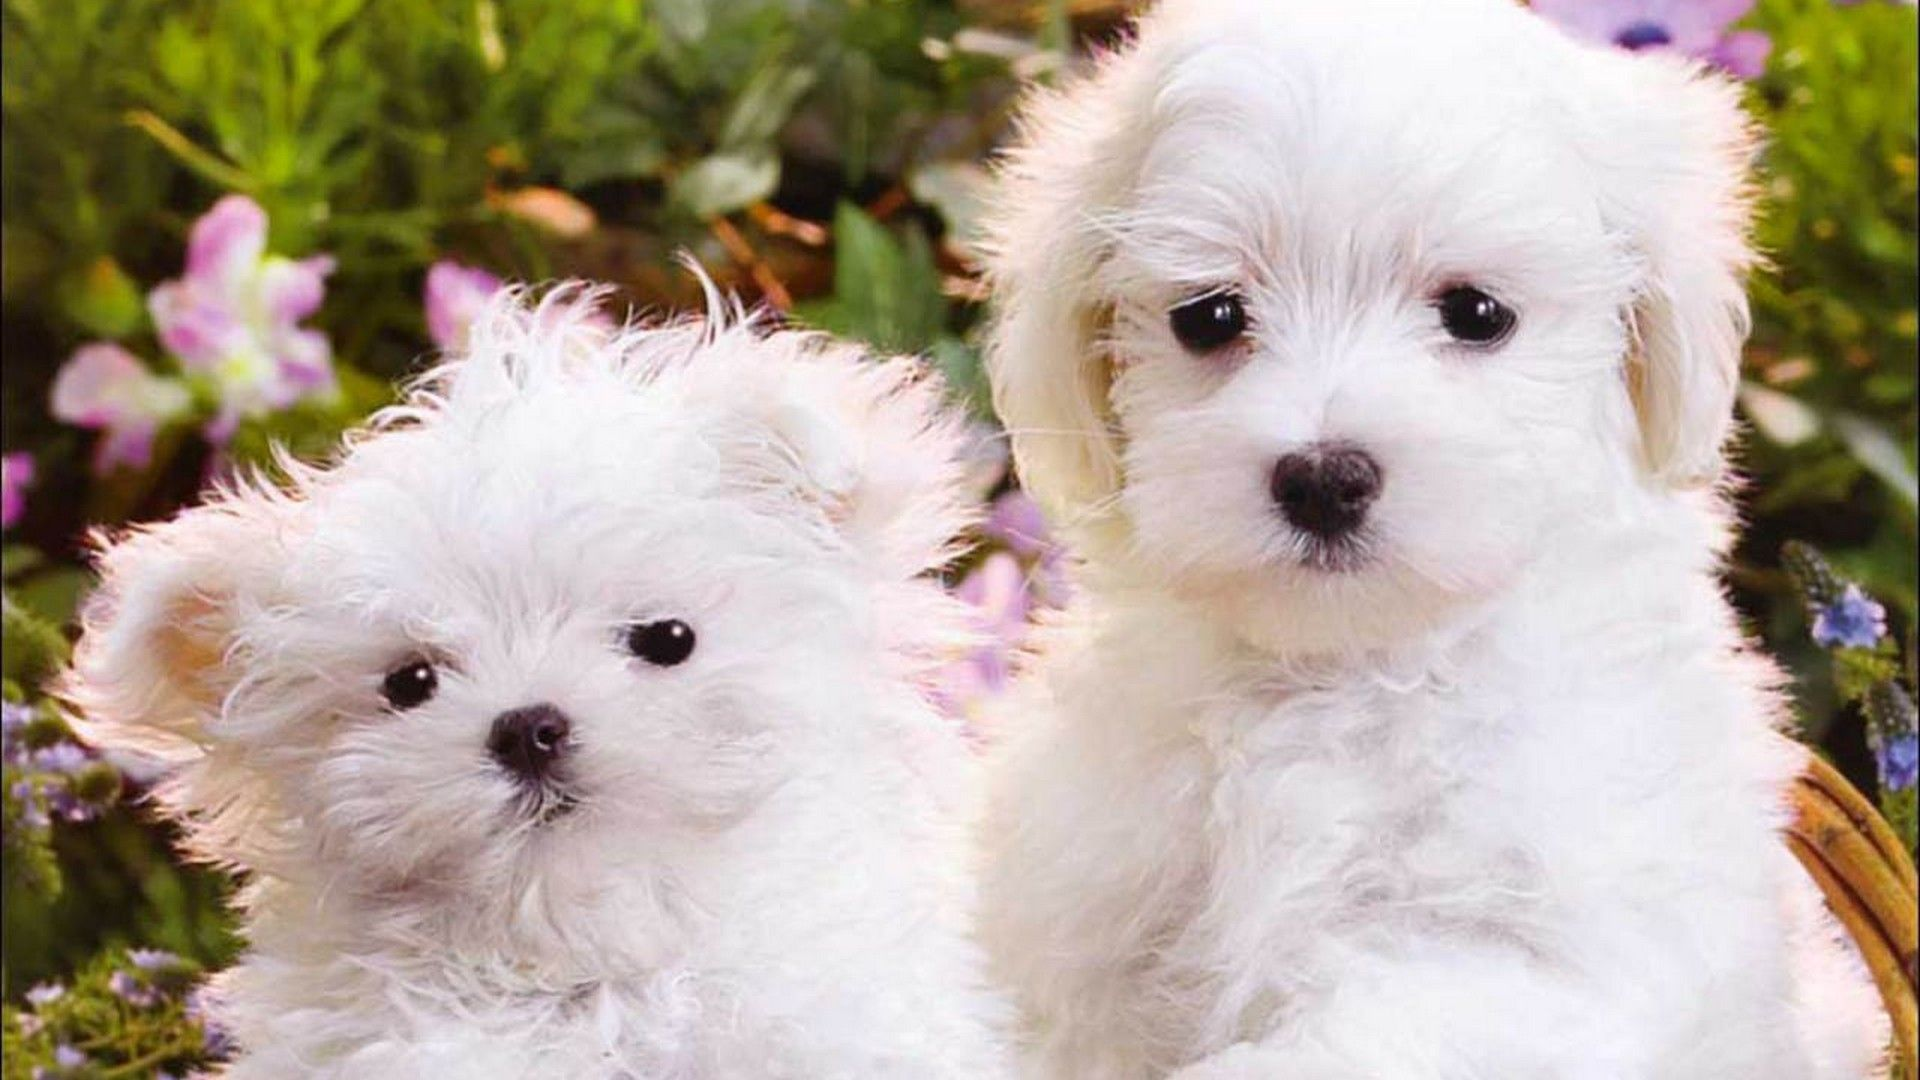 Wallpapers Funny Puppies 2021 Live Wallpaper Hd Cute Puppies Puppies Puppies Funny